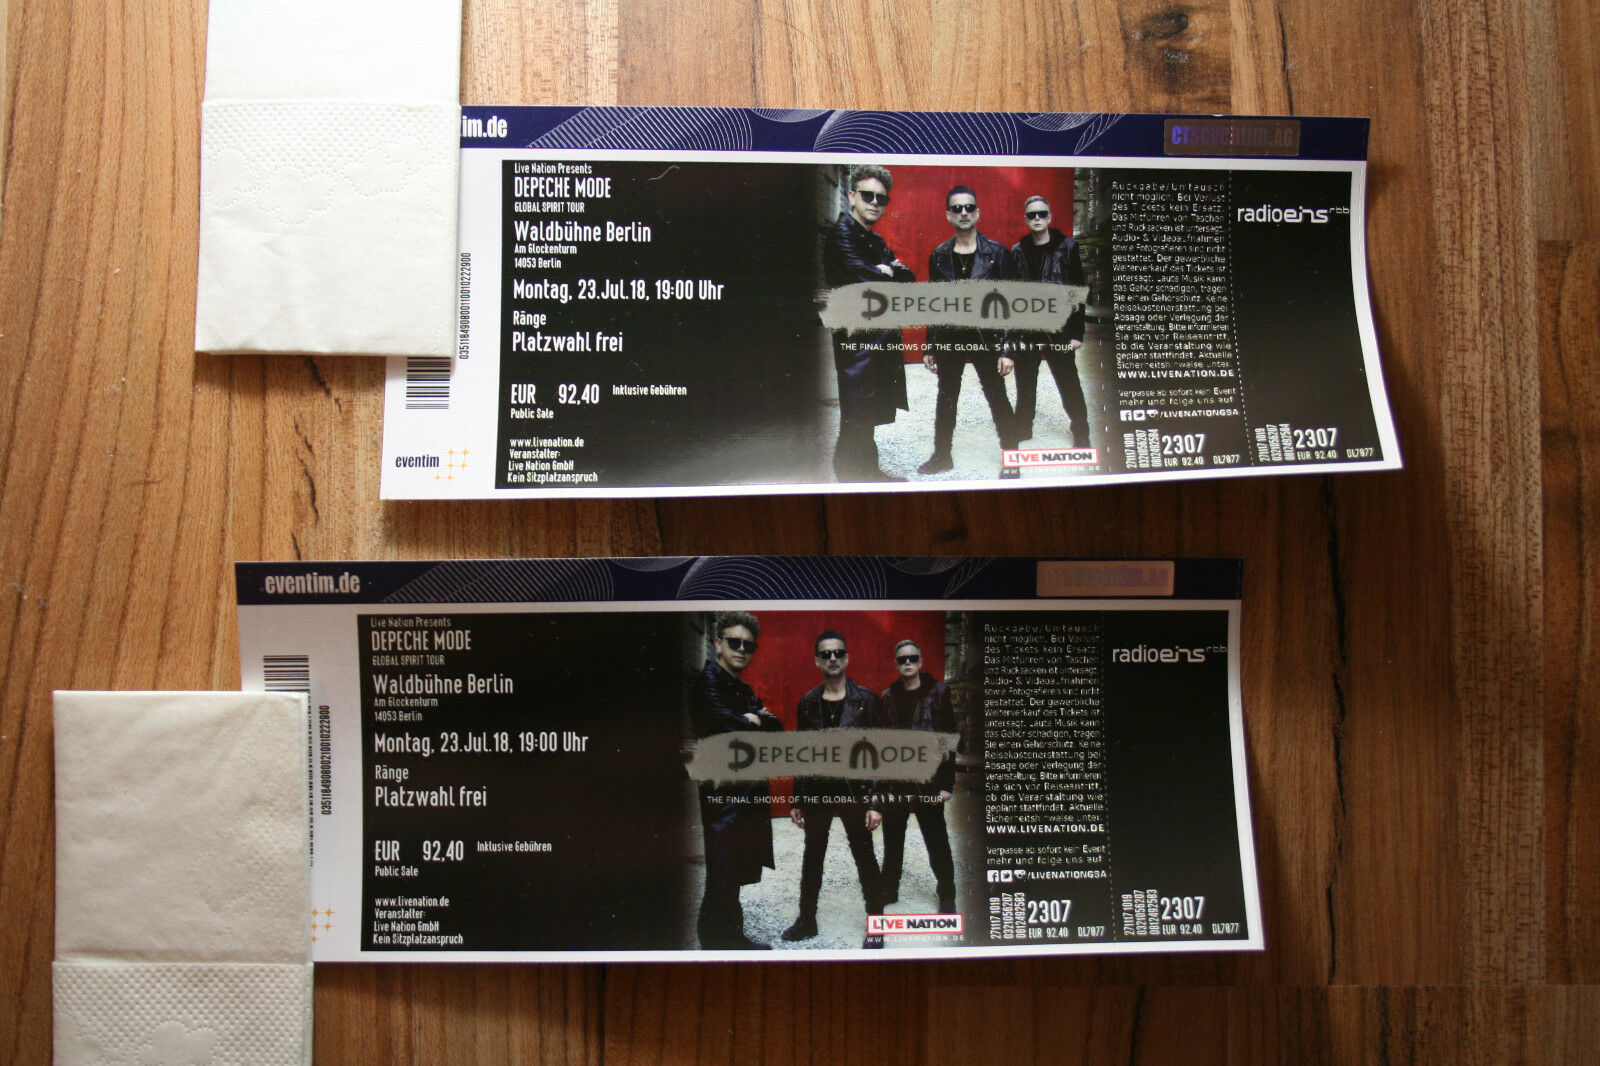 2 karten tickets f r depeche mode in berlin waldb hne eur 391 00 picclick de. Black Bedroom Furniture Sets. Home Design Ideas